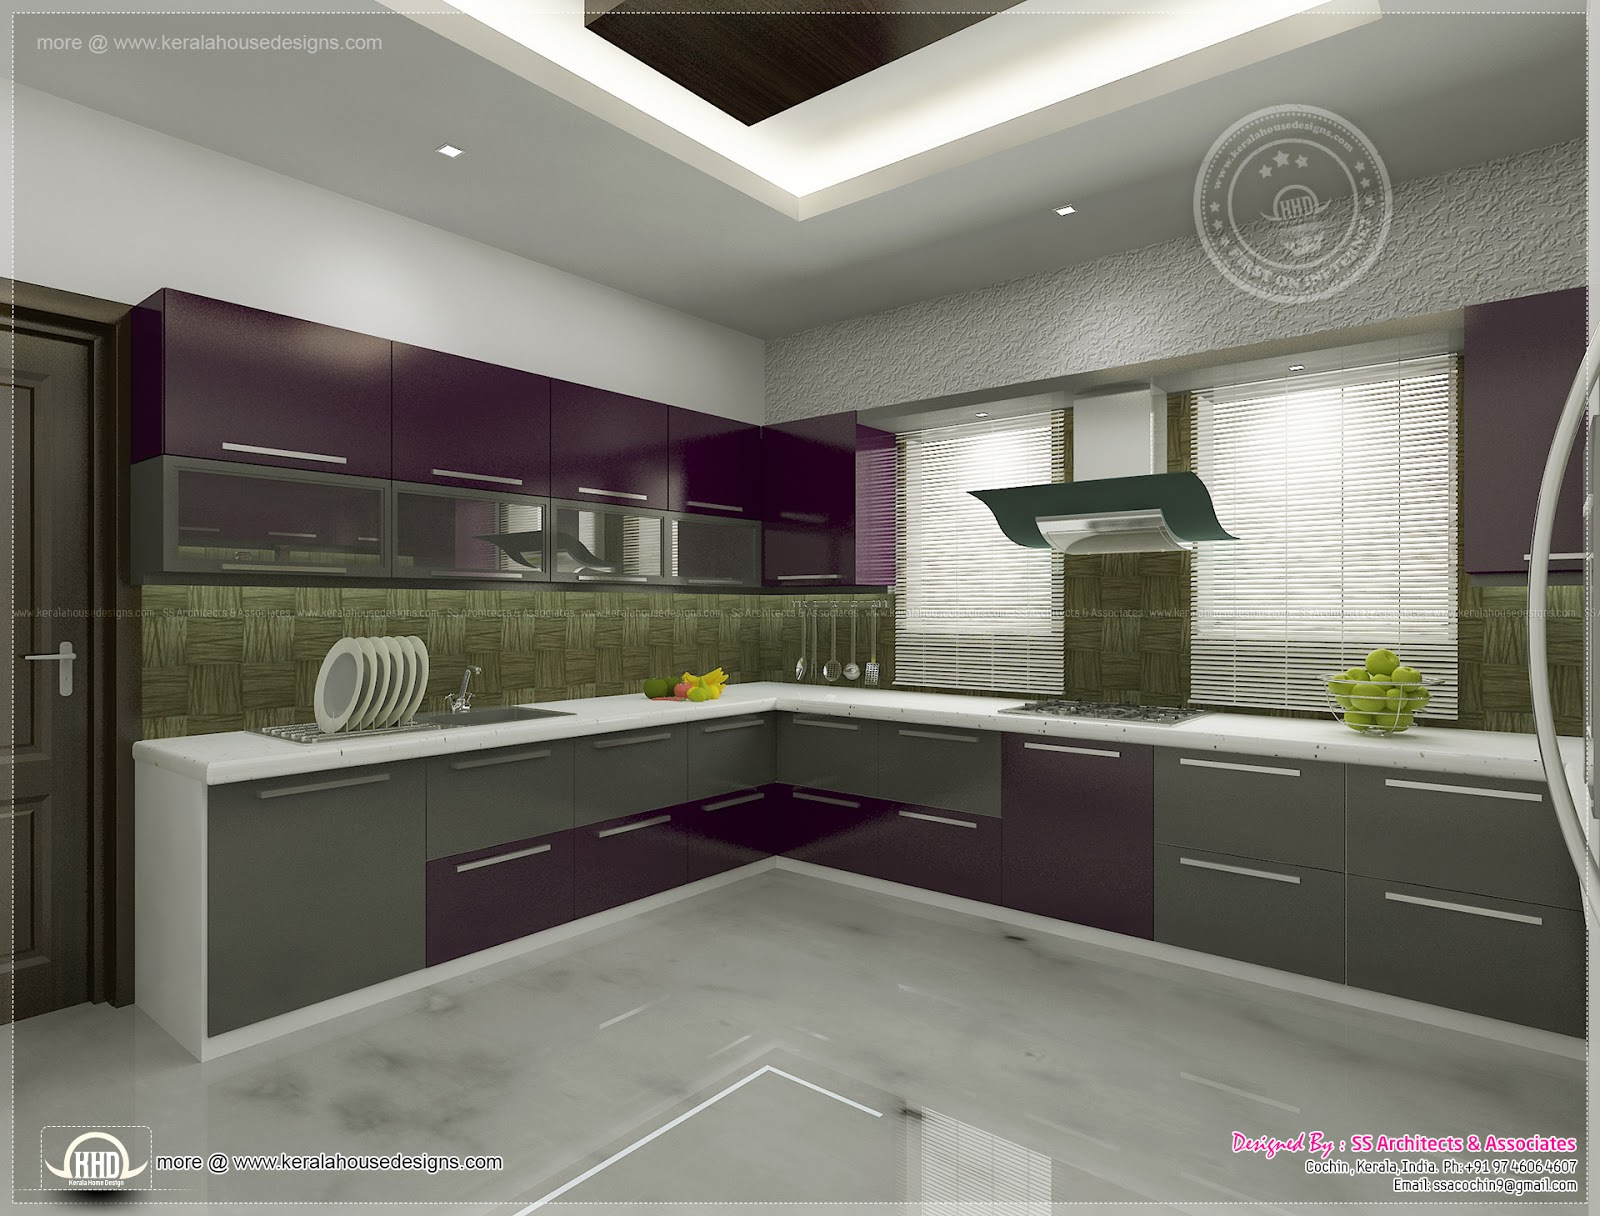 Kitchen interior views by ss architects cochin kerala for Best house interior designs